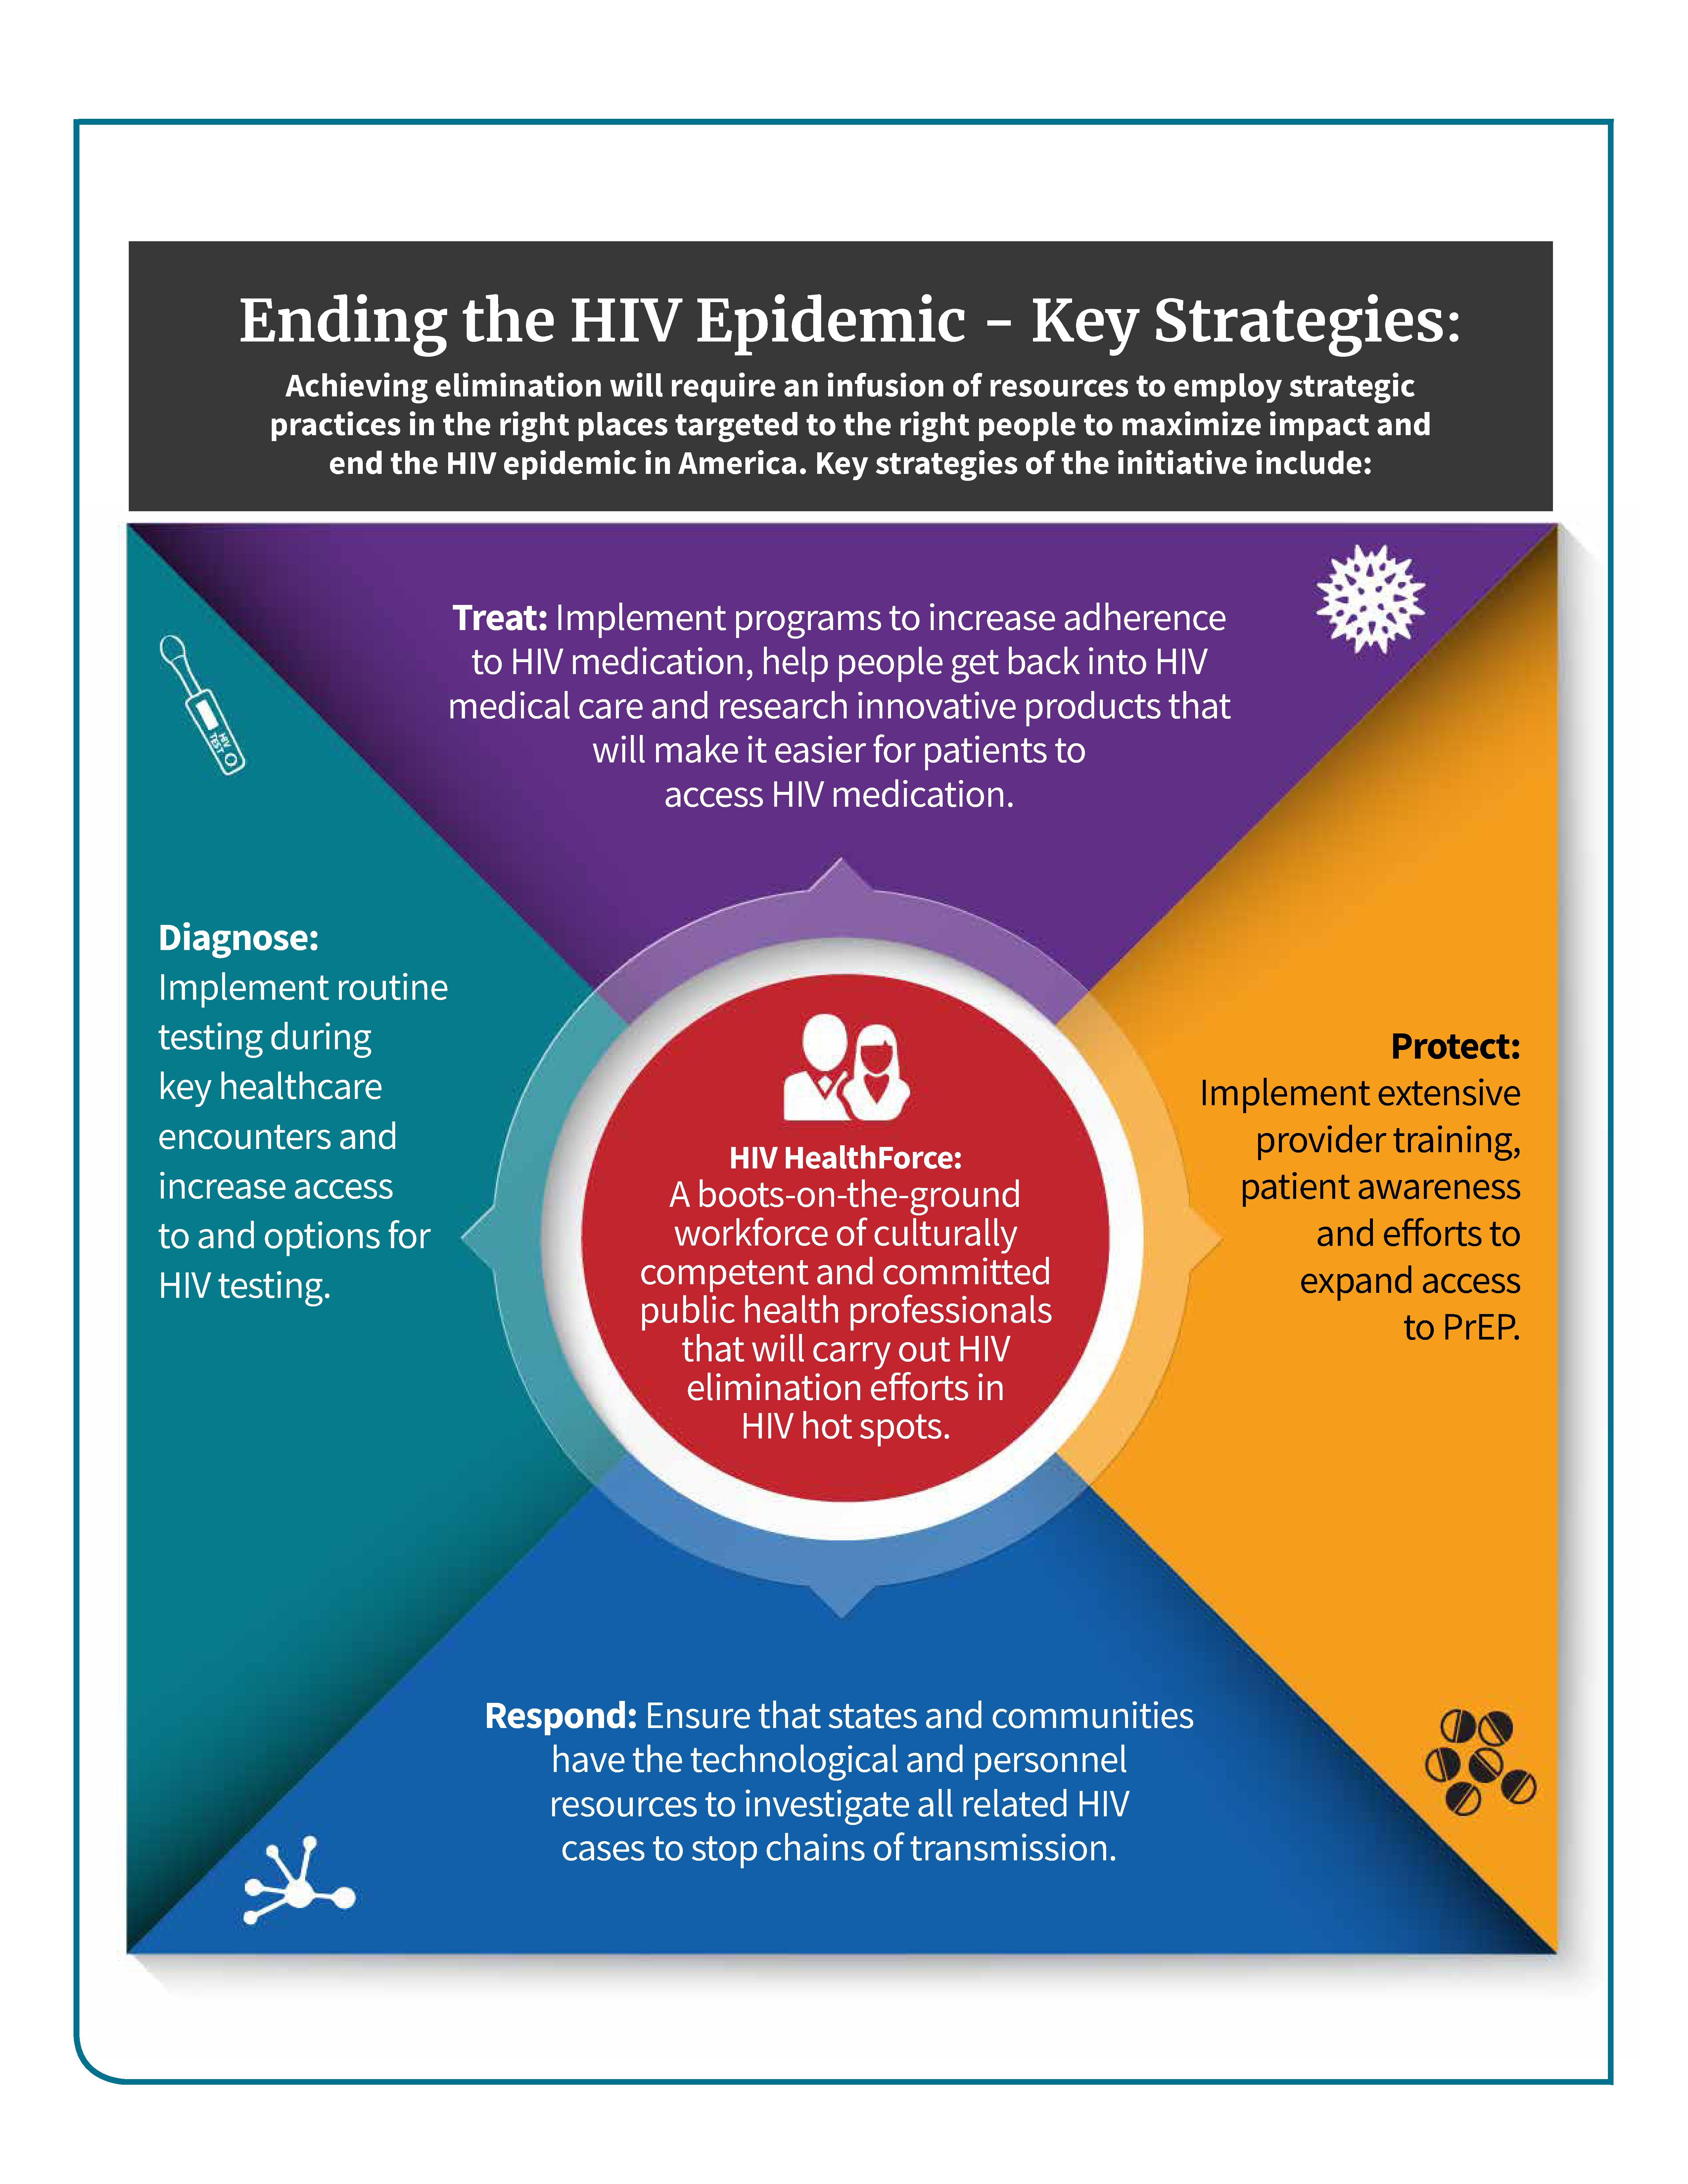 HIV plan from the White House, page 2